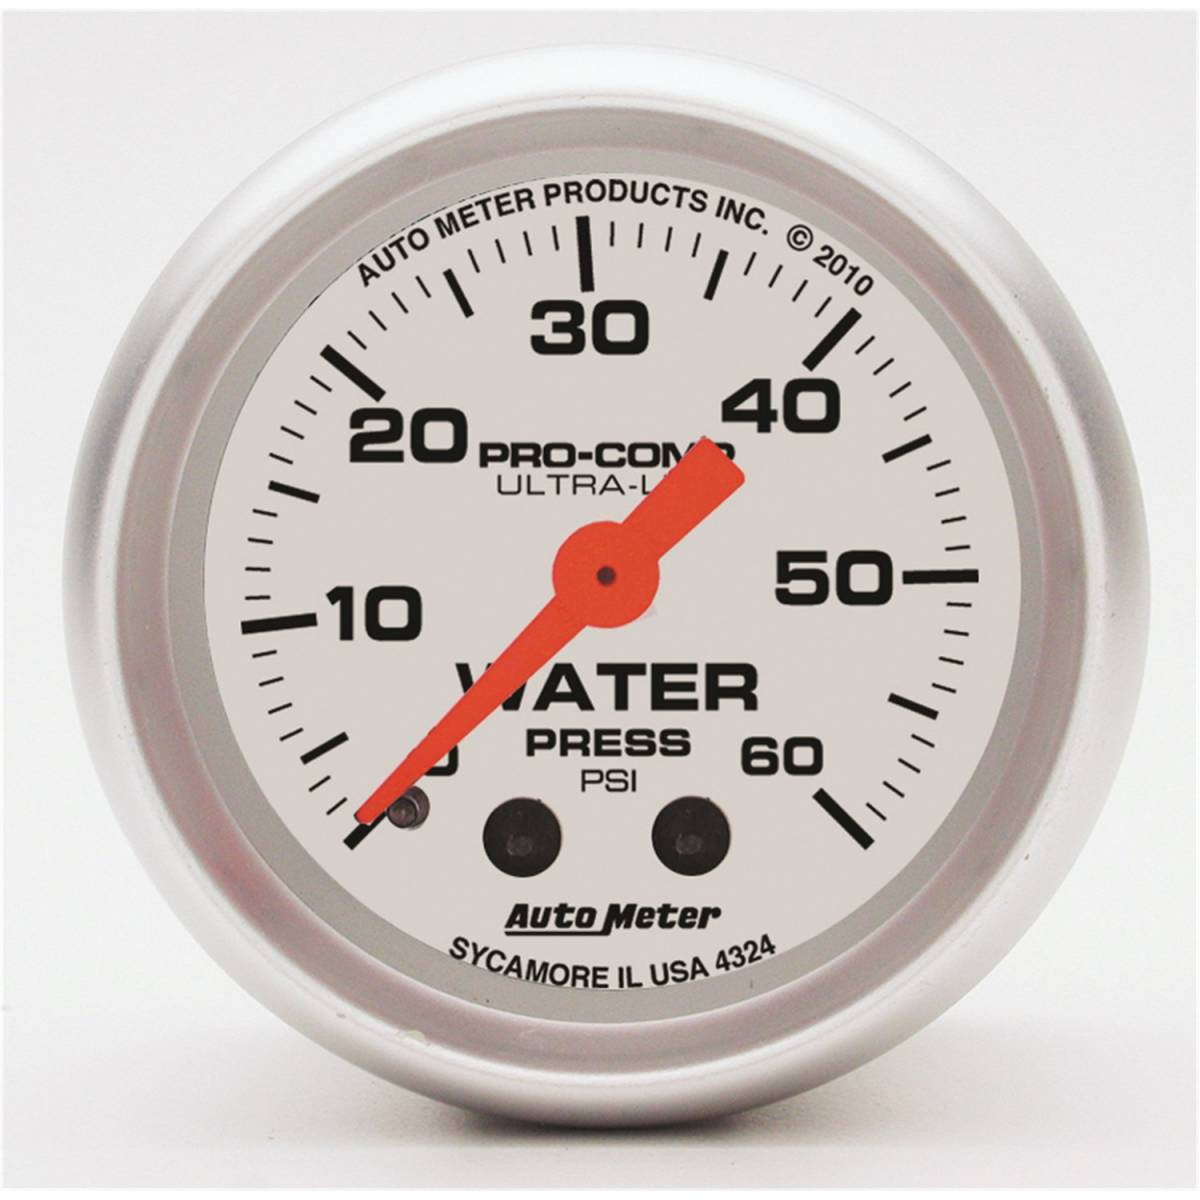 Autometer 4368 Ultra Lite Electric Water Pressure Gauge: AutoMeter #4324 Gauge; Water Press; 2 1/16in.; 60psi